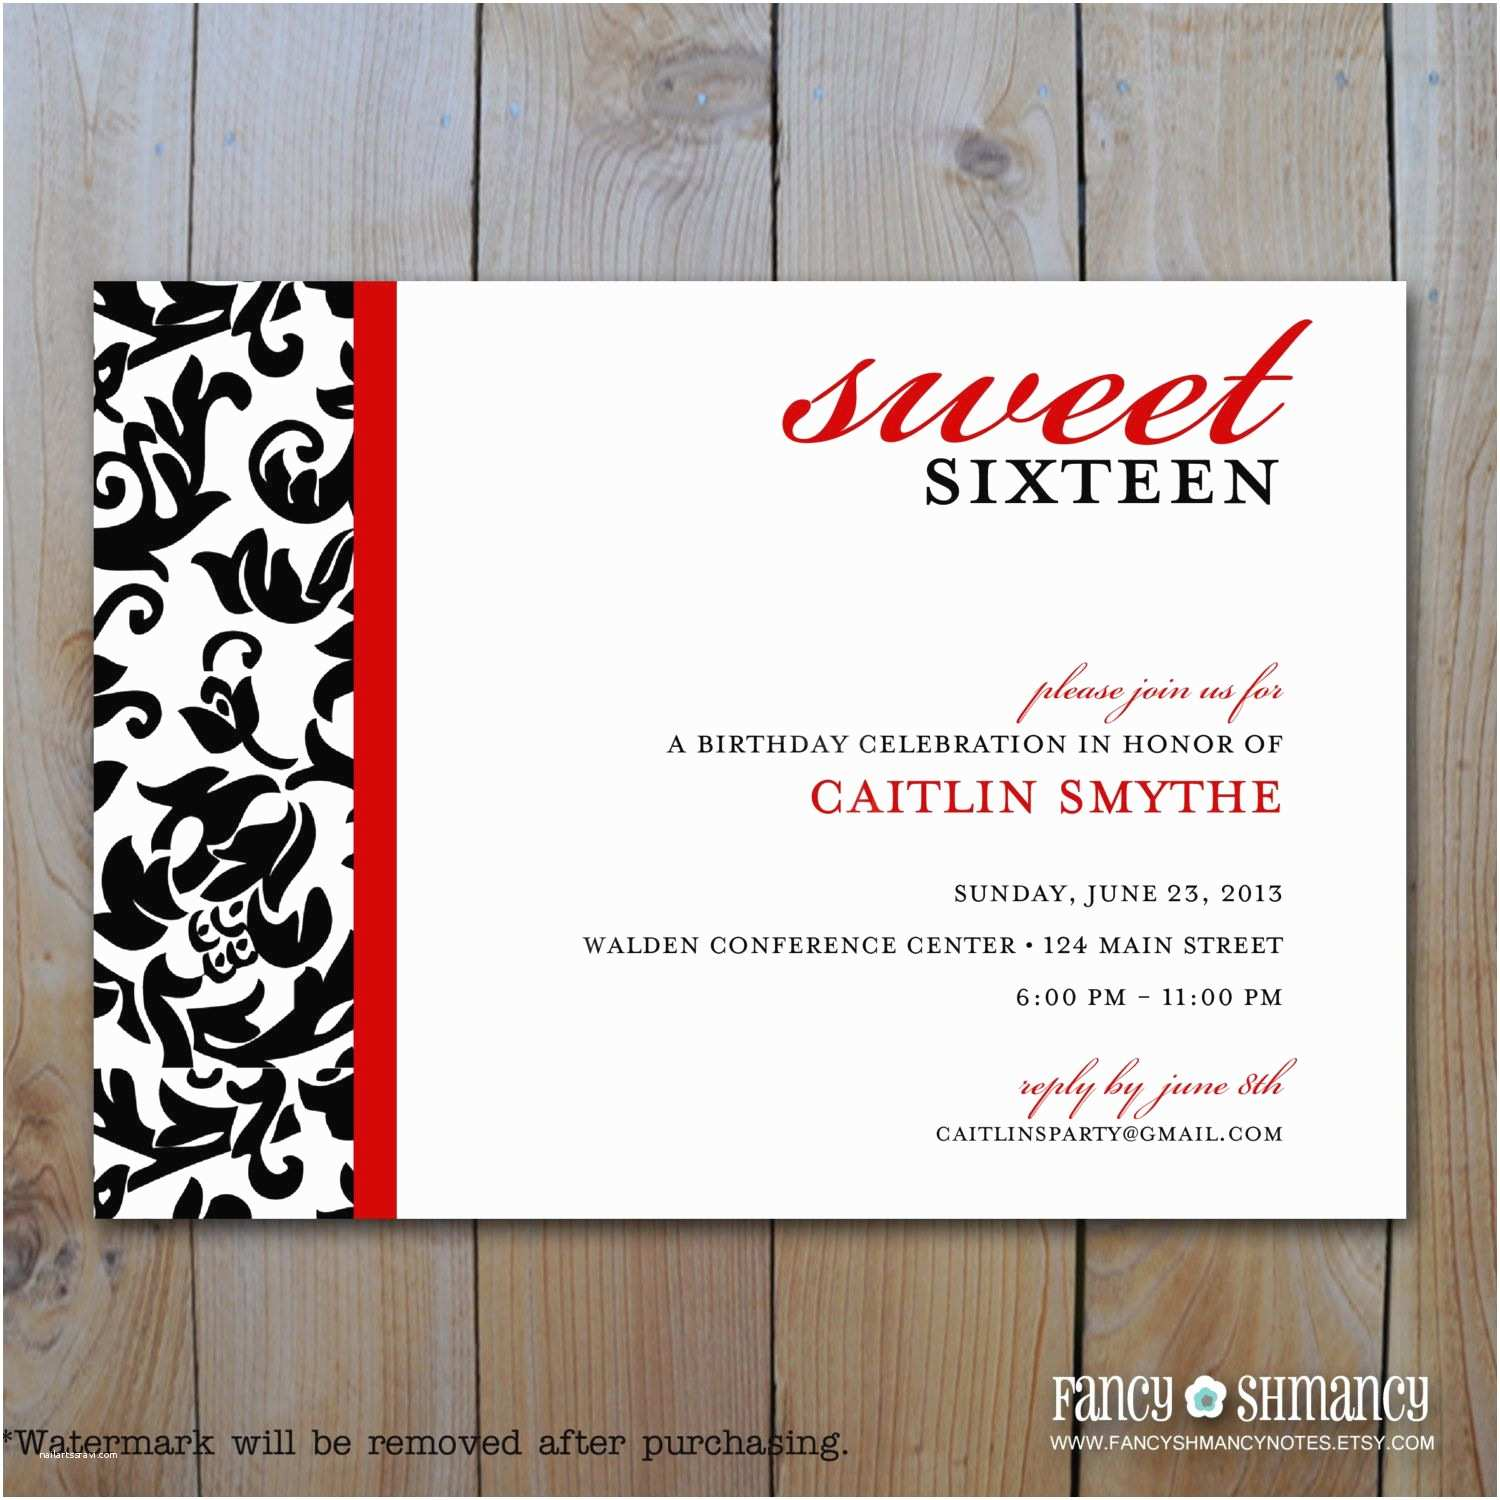 Sweet 16 Party Invitations Birthday Party Sweet 16 Birthday Invitations Templates